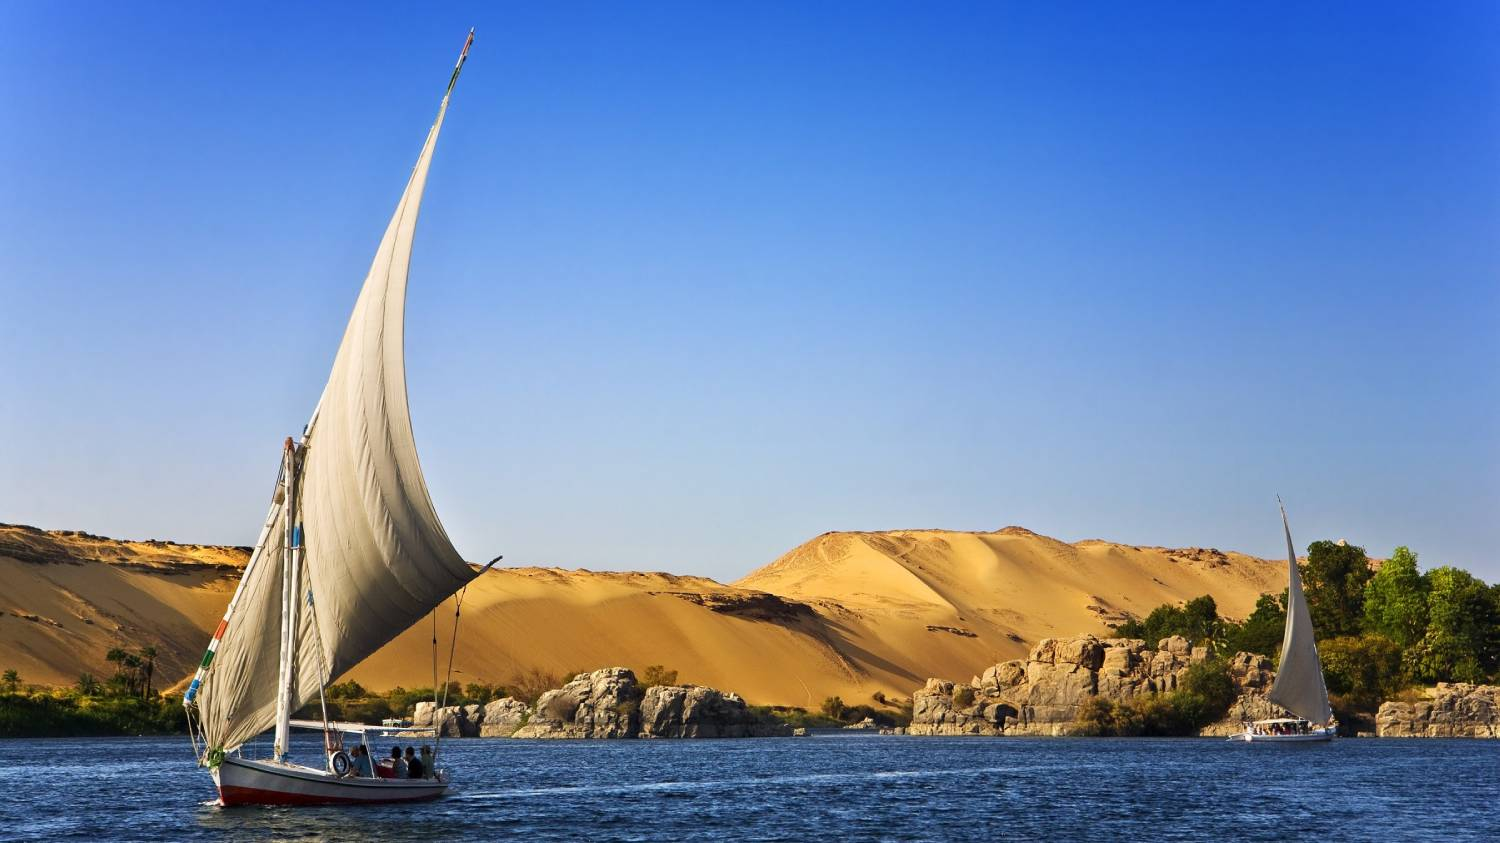 Aswan - The Best Places To Visit In Egypt